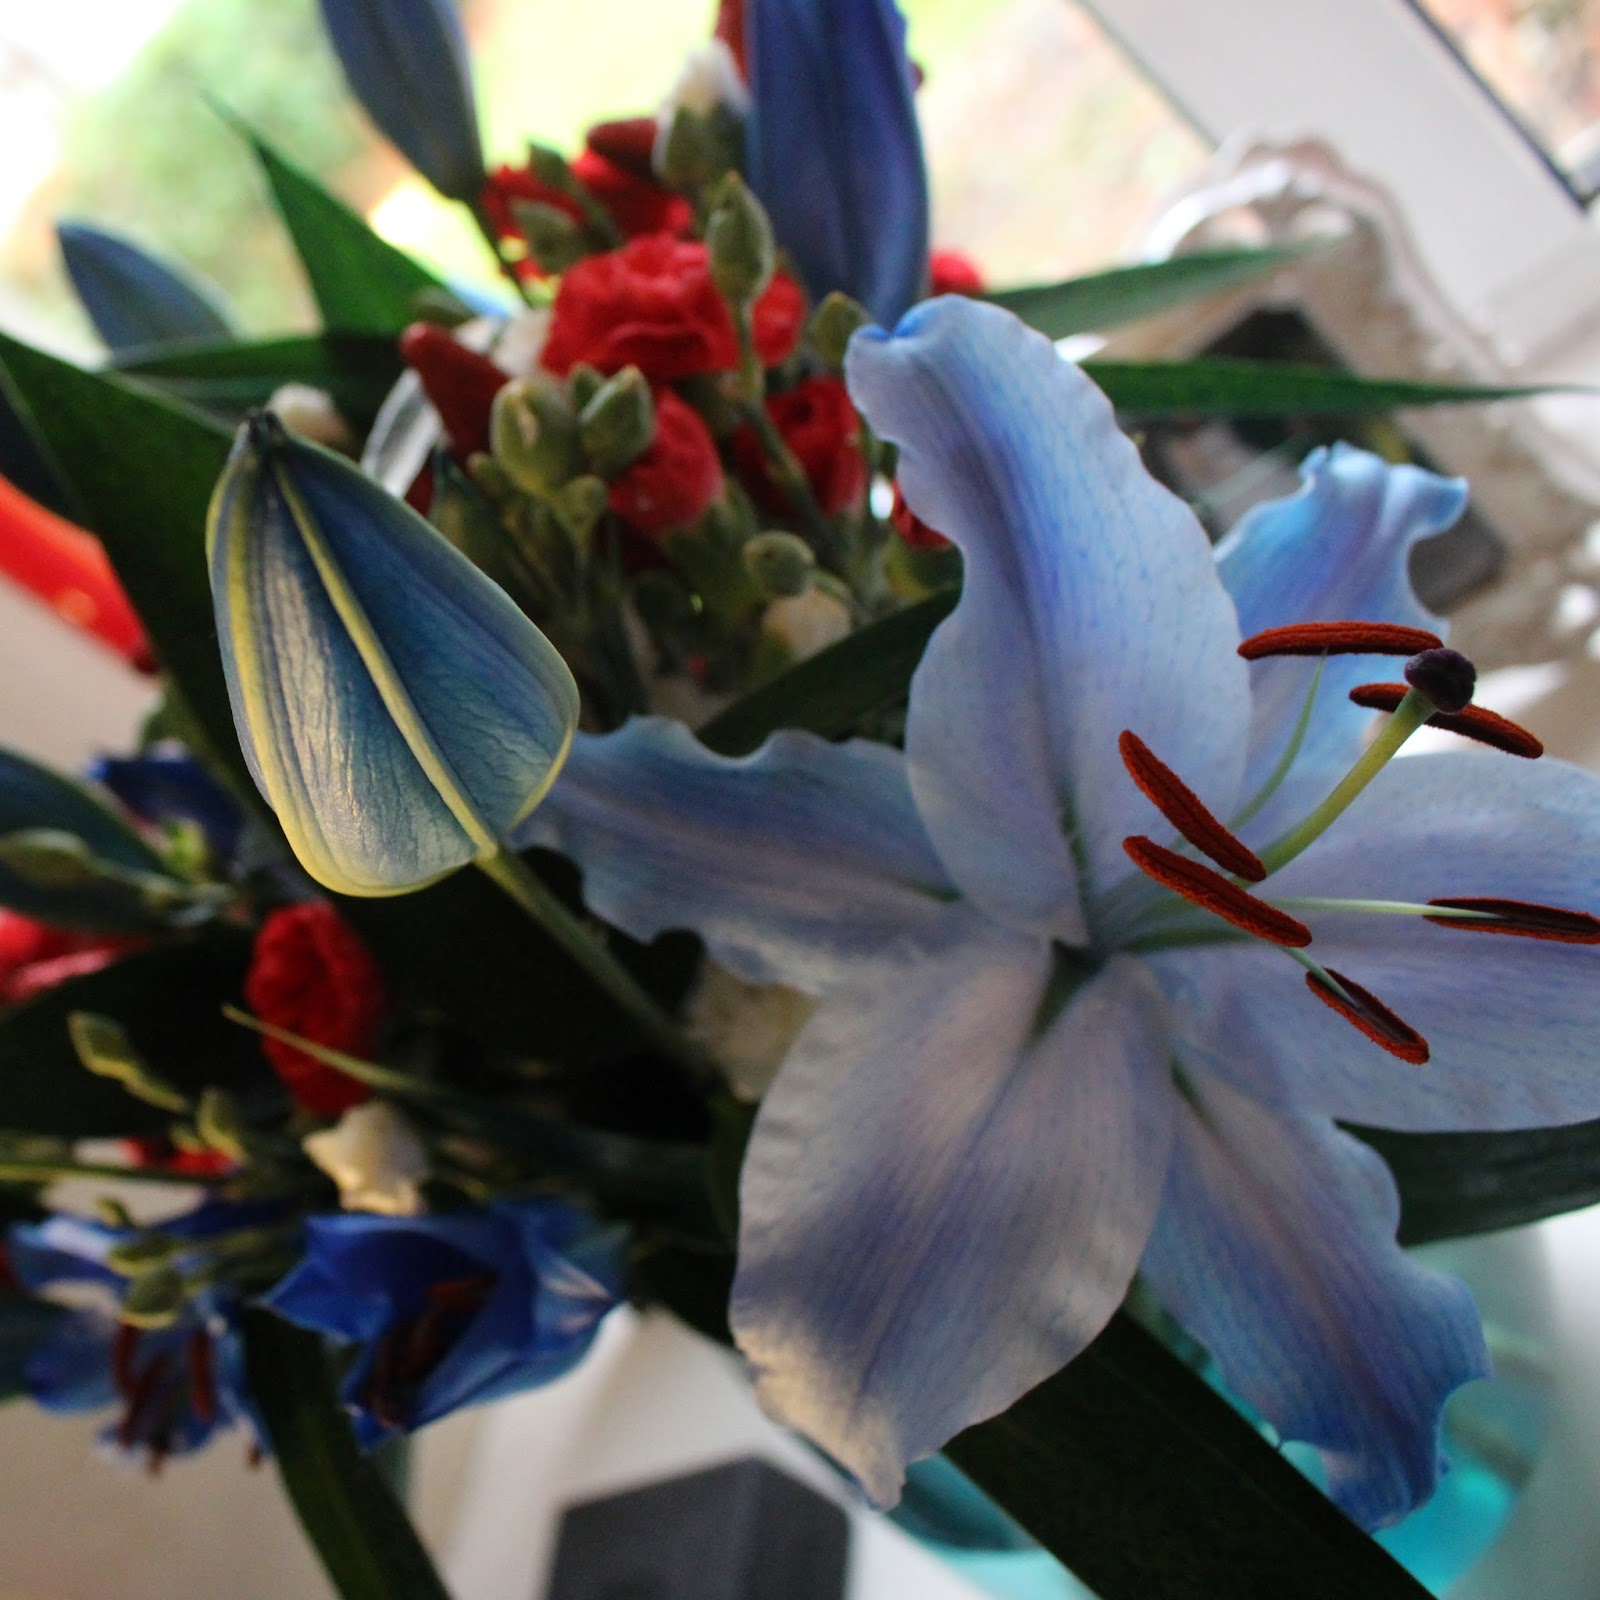 Happy thoughts forget me nots easing allergies removing lily stamen i love decorating our house for each season or special occasion i especially love theming my decorations flowers have become my favourite way of doing izmirmasajfo